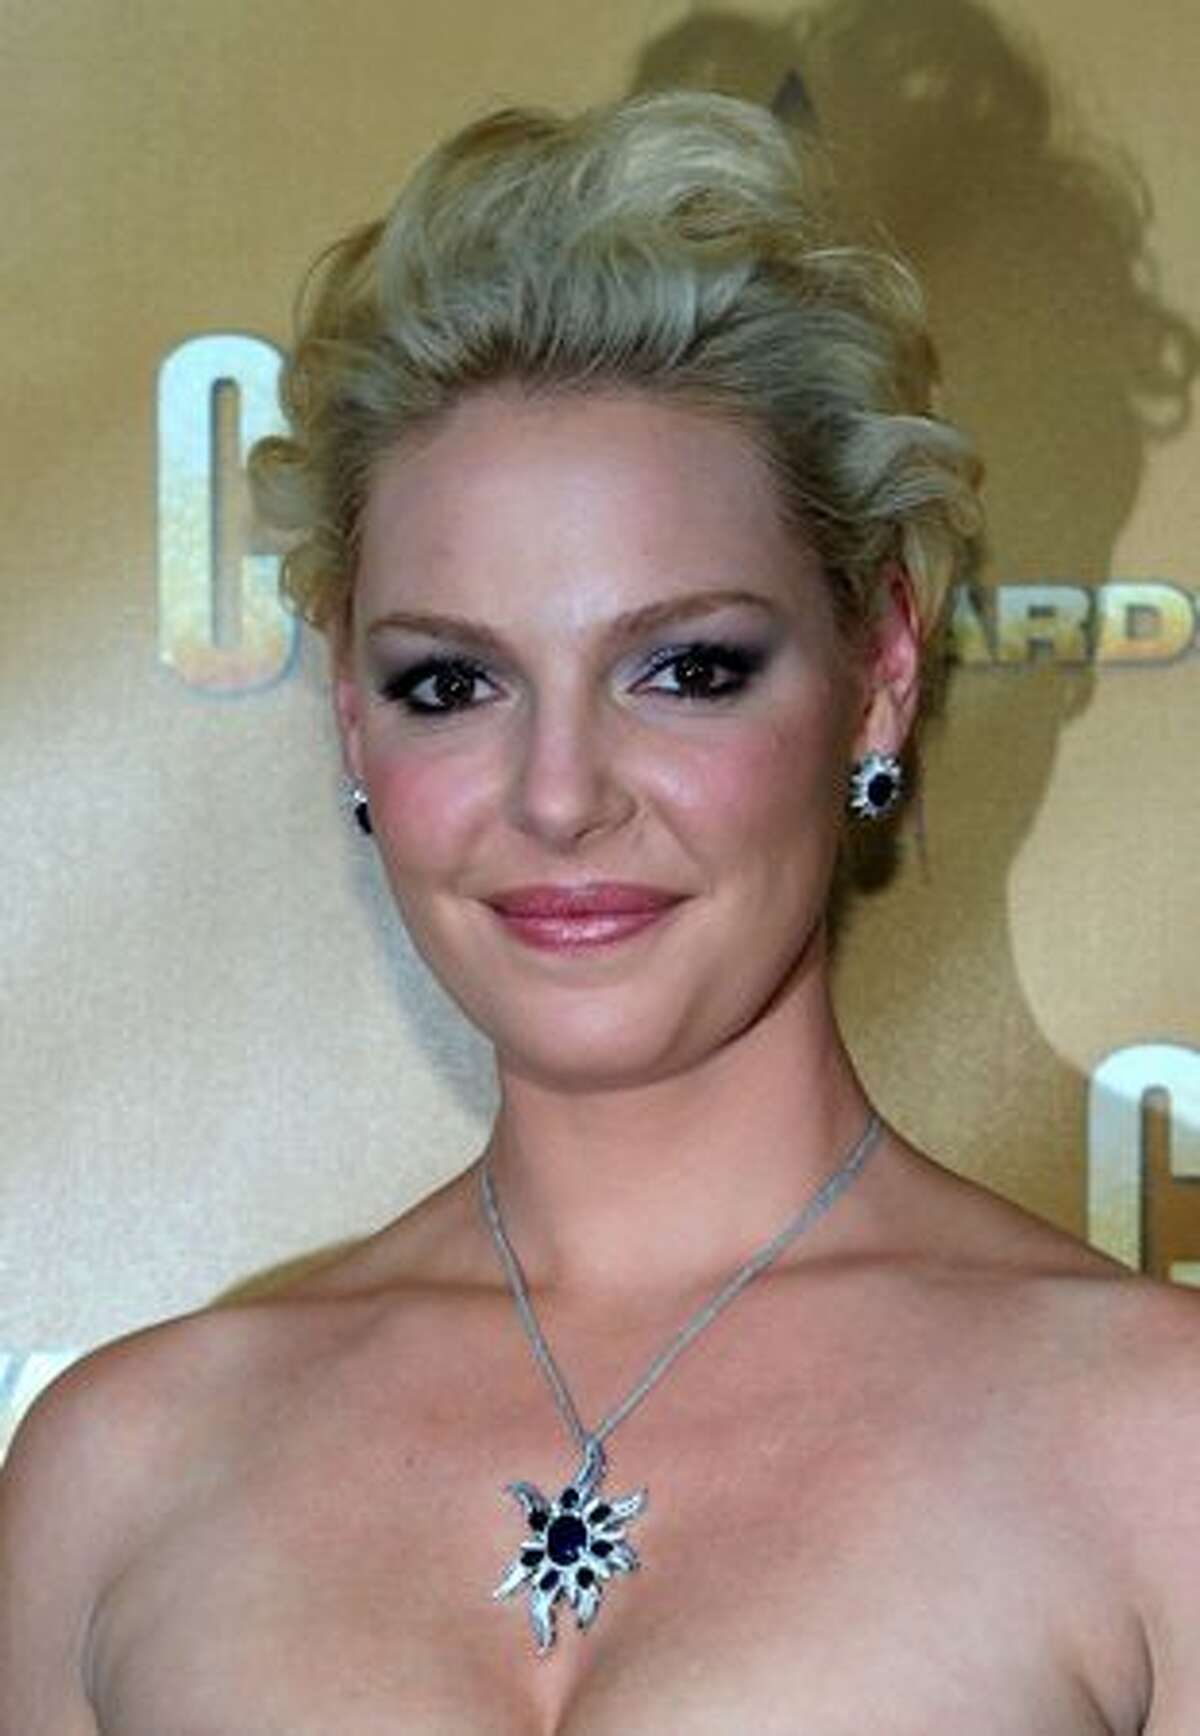 Actress Katherine Heigl attends the 44th Annual CMA Awards at the Bridgestone Arena on Wednesday in Nashville, Tennessee.